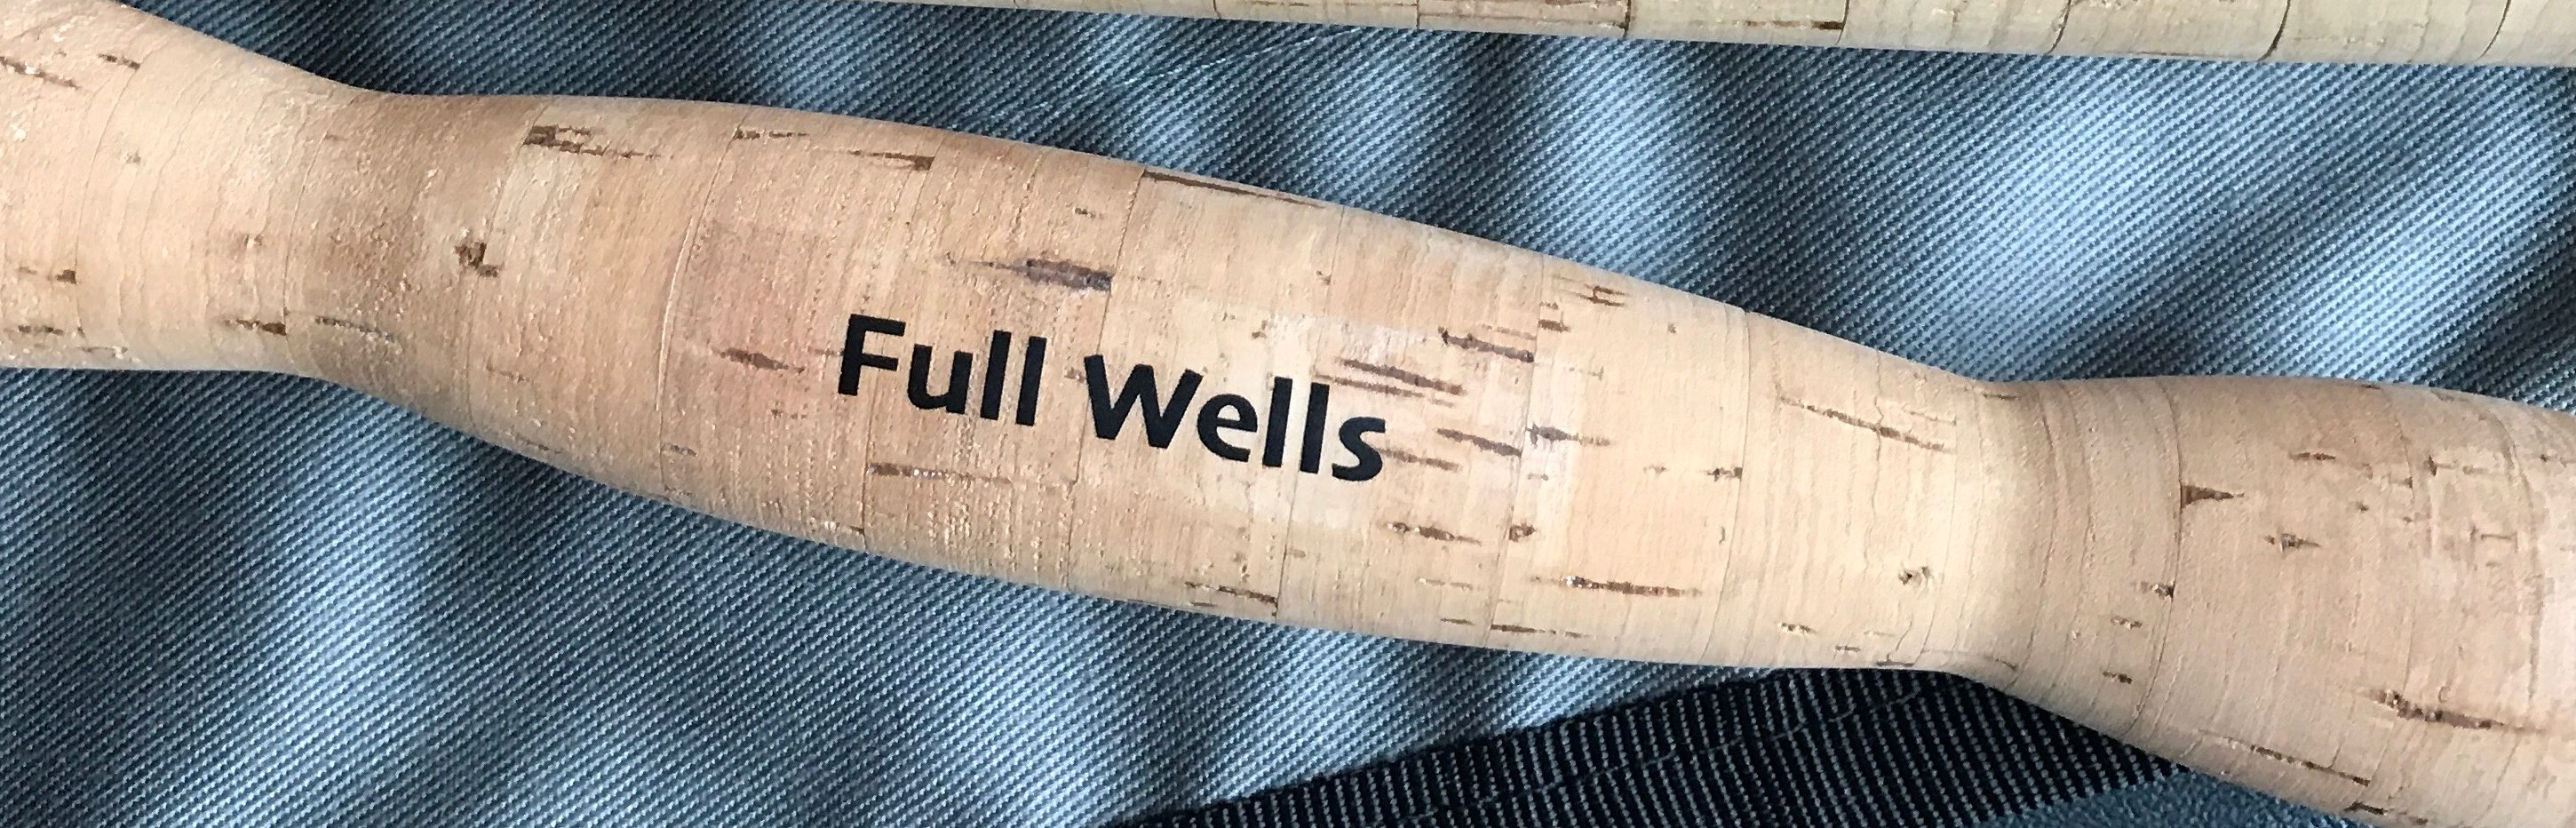 Full Wells Grip